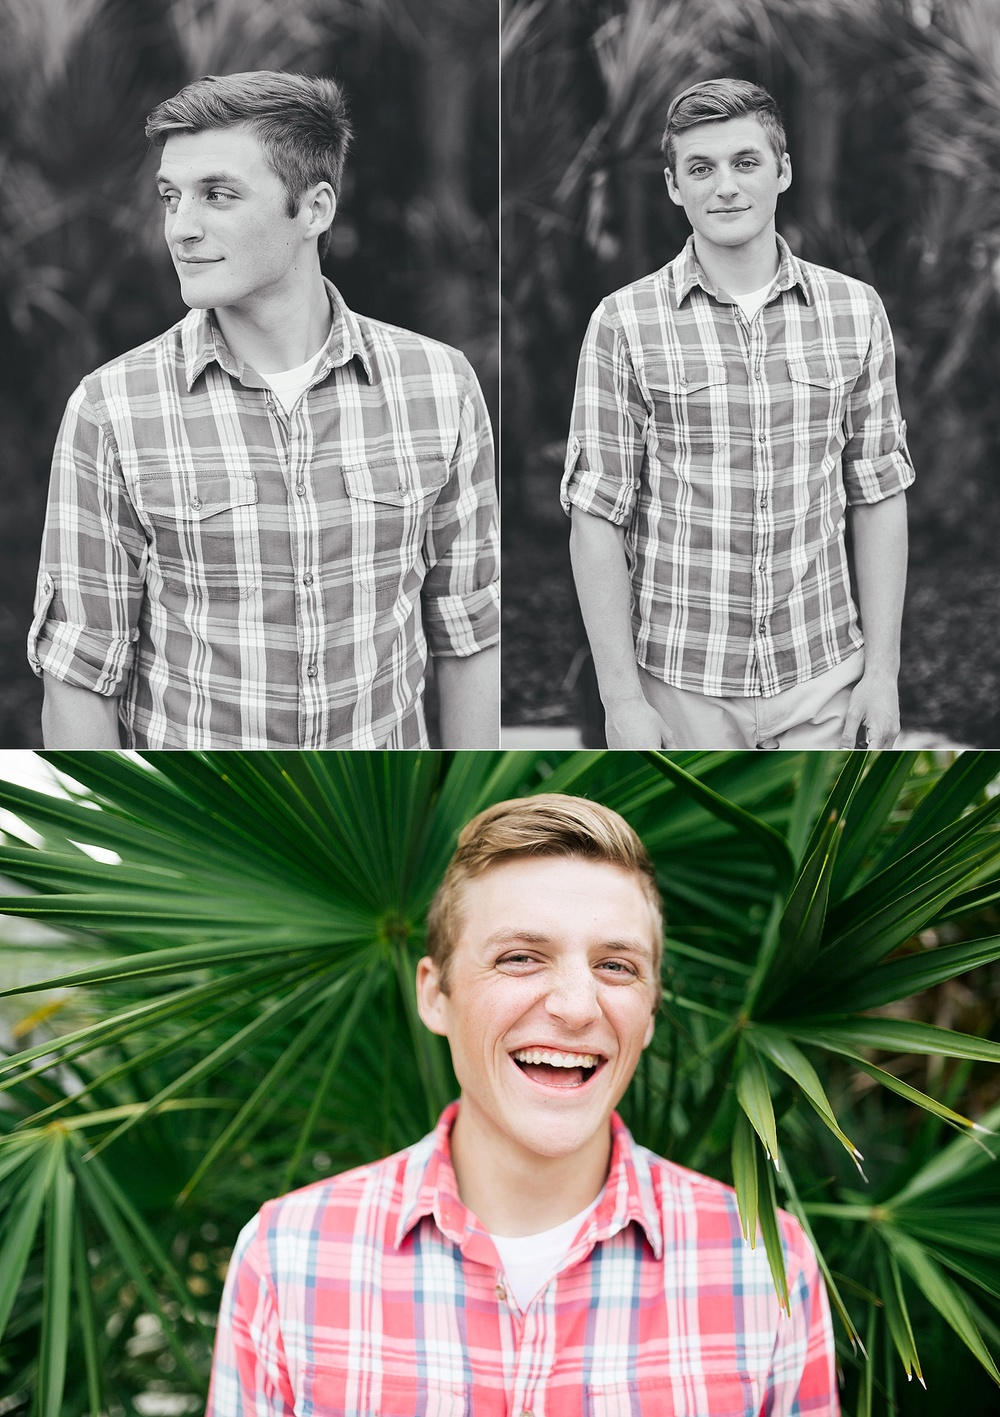 tampa bay senior portraits colin-10